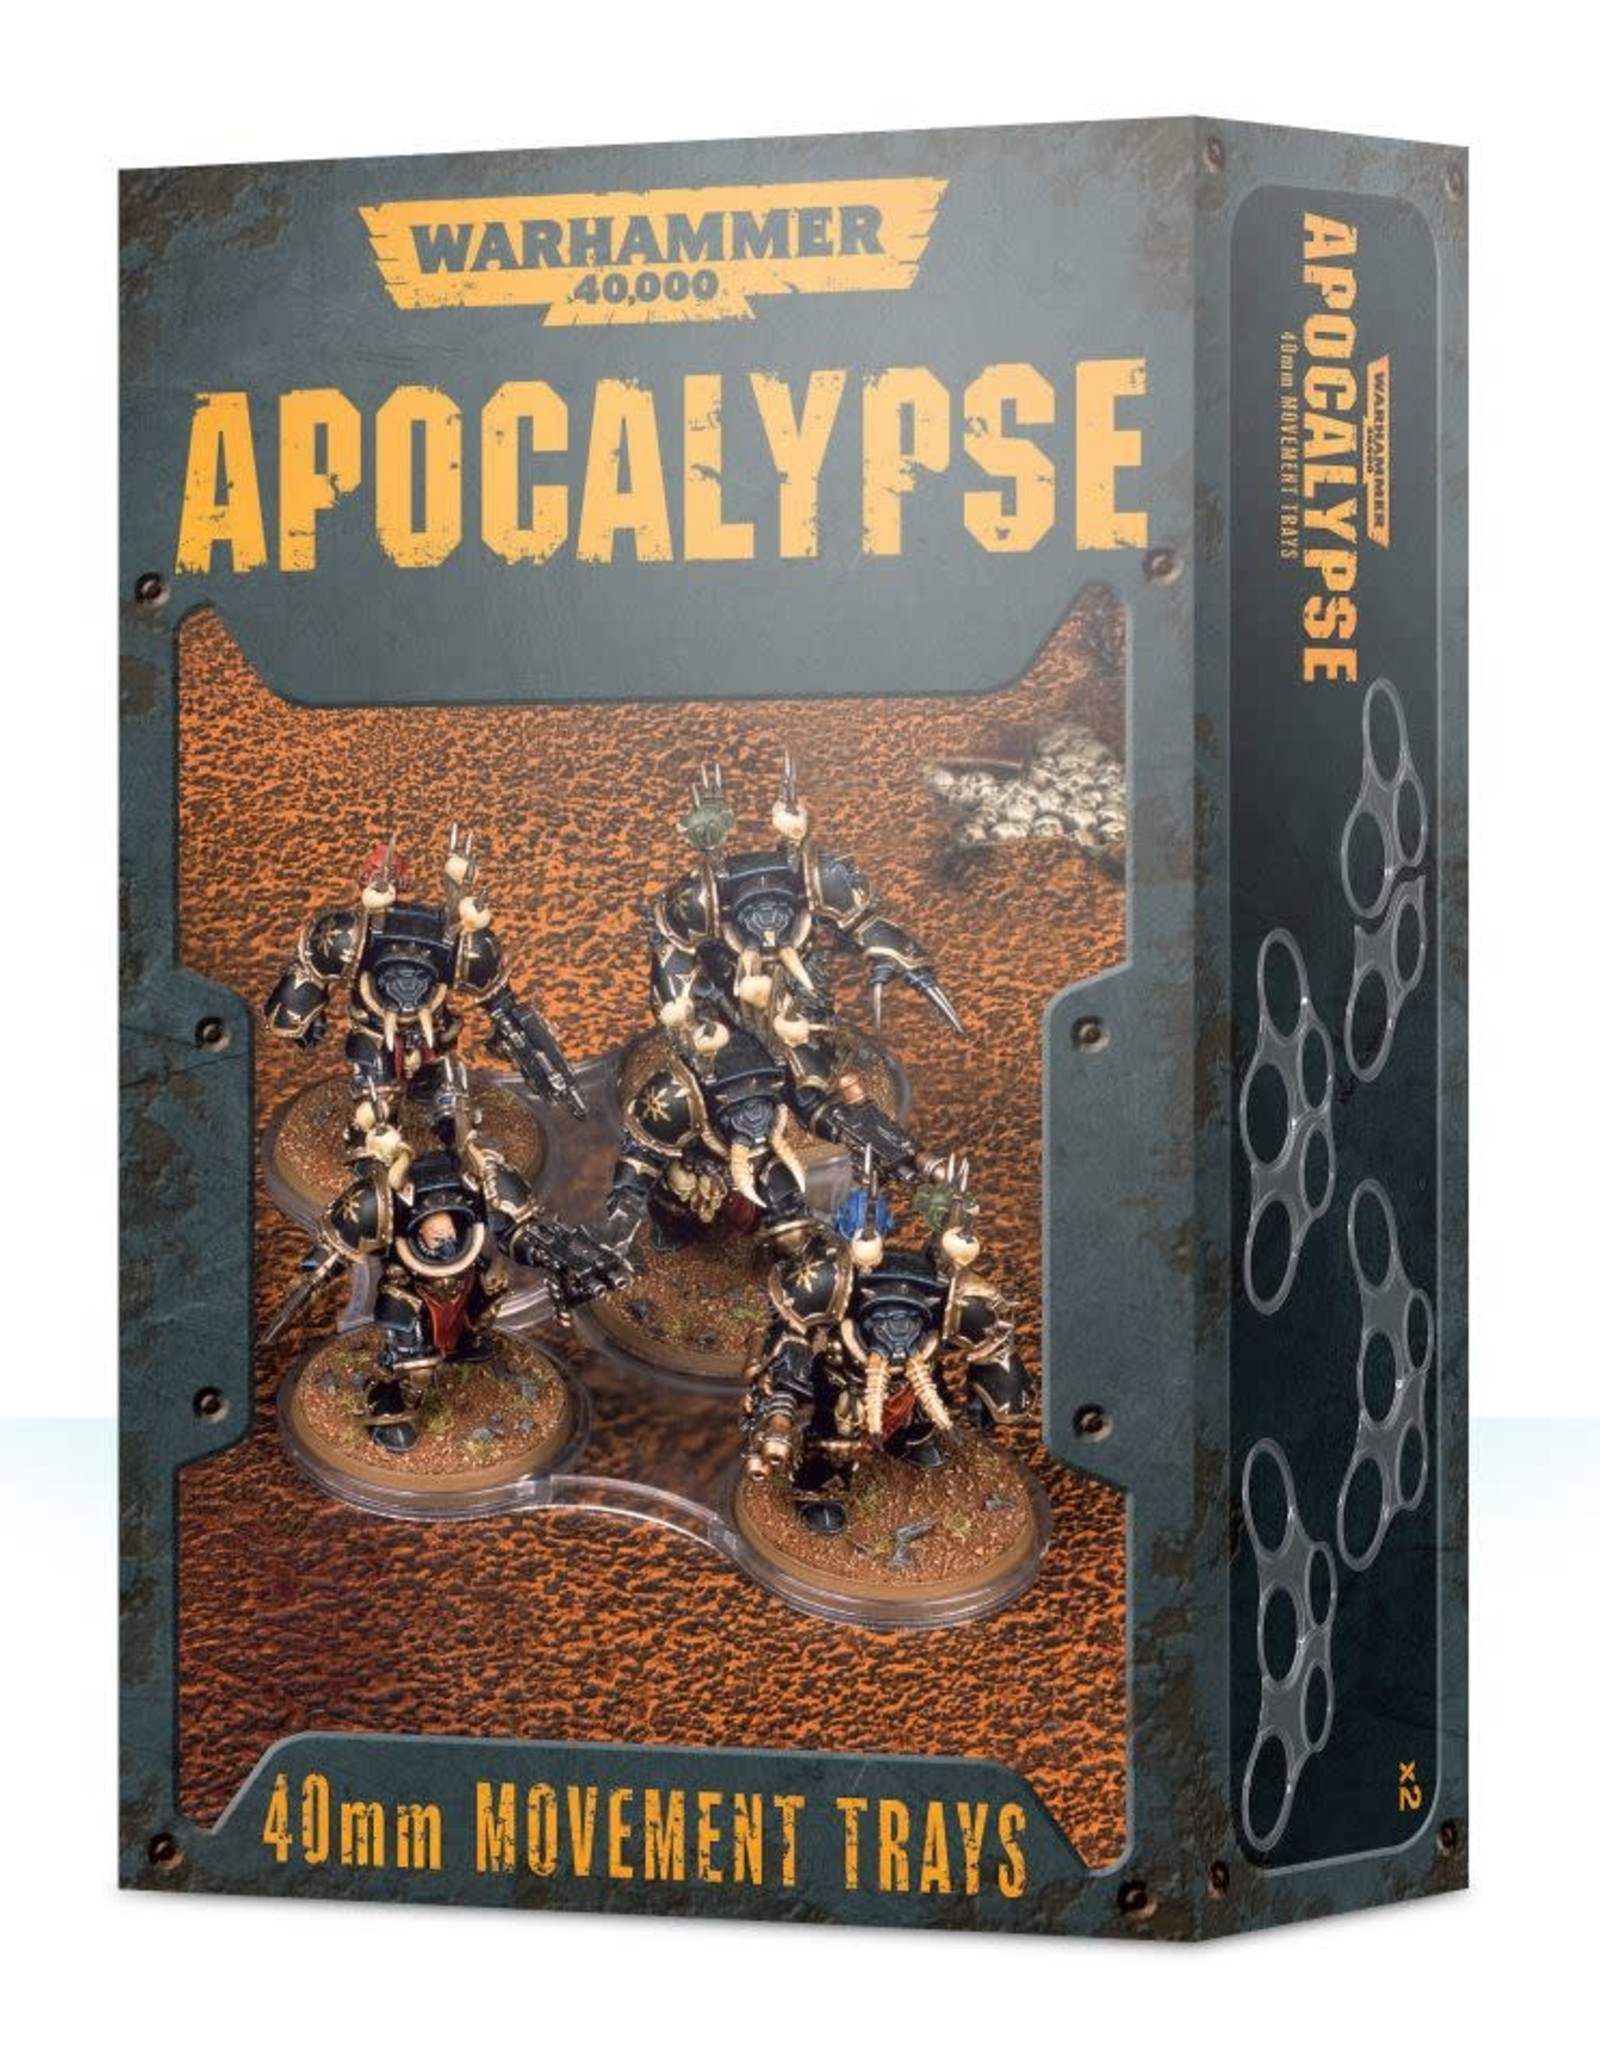 Warhammer 40K Apocalypse 40mm Movement Trays